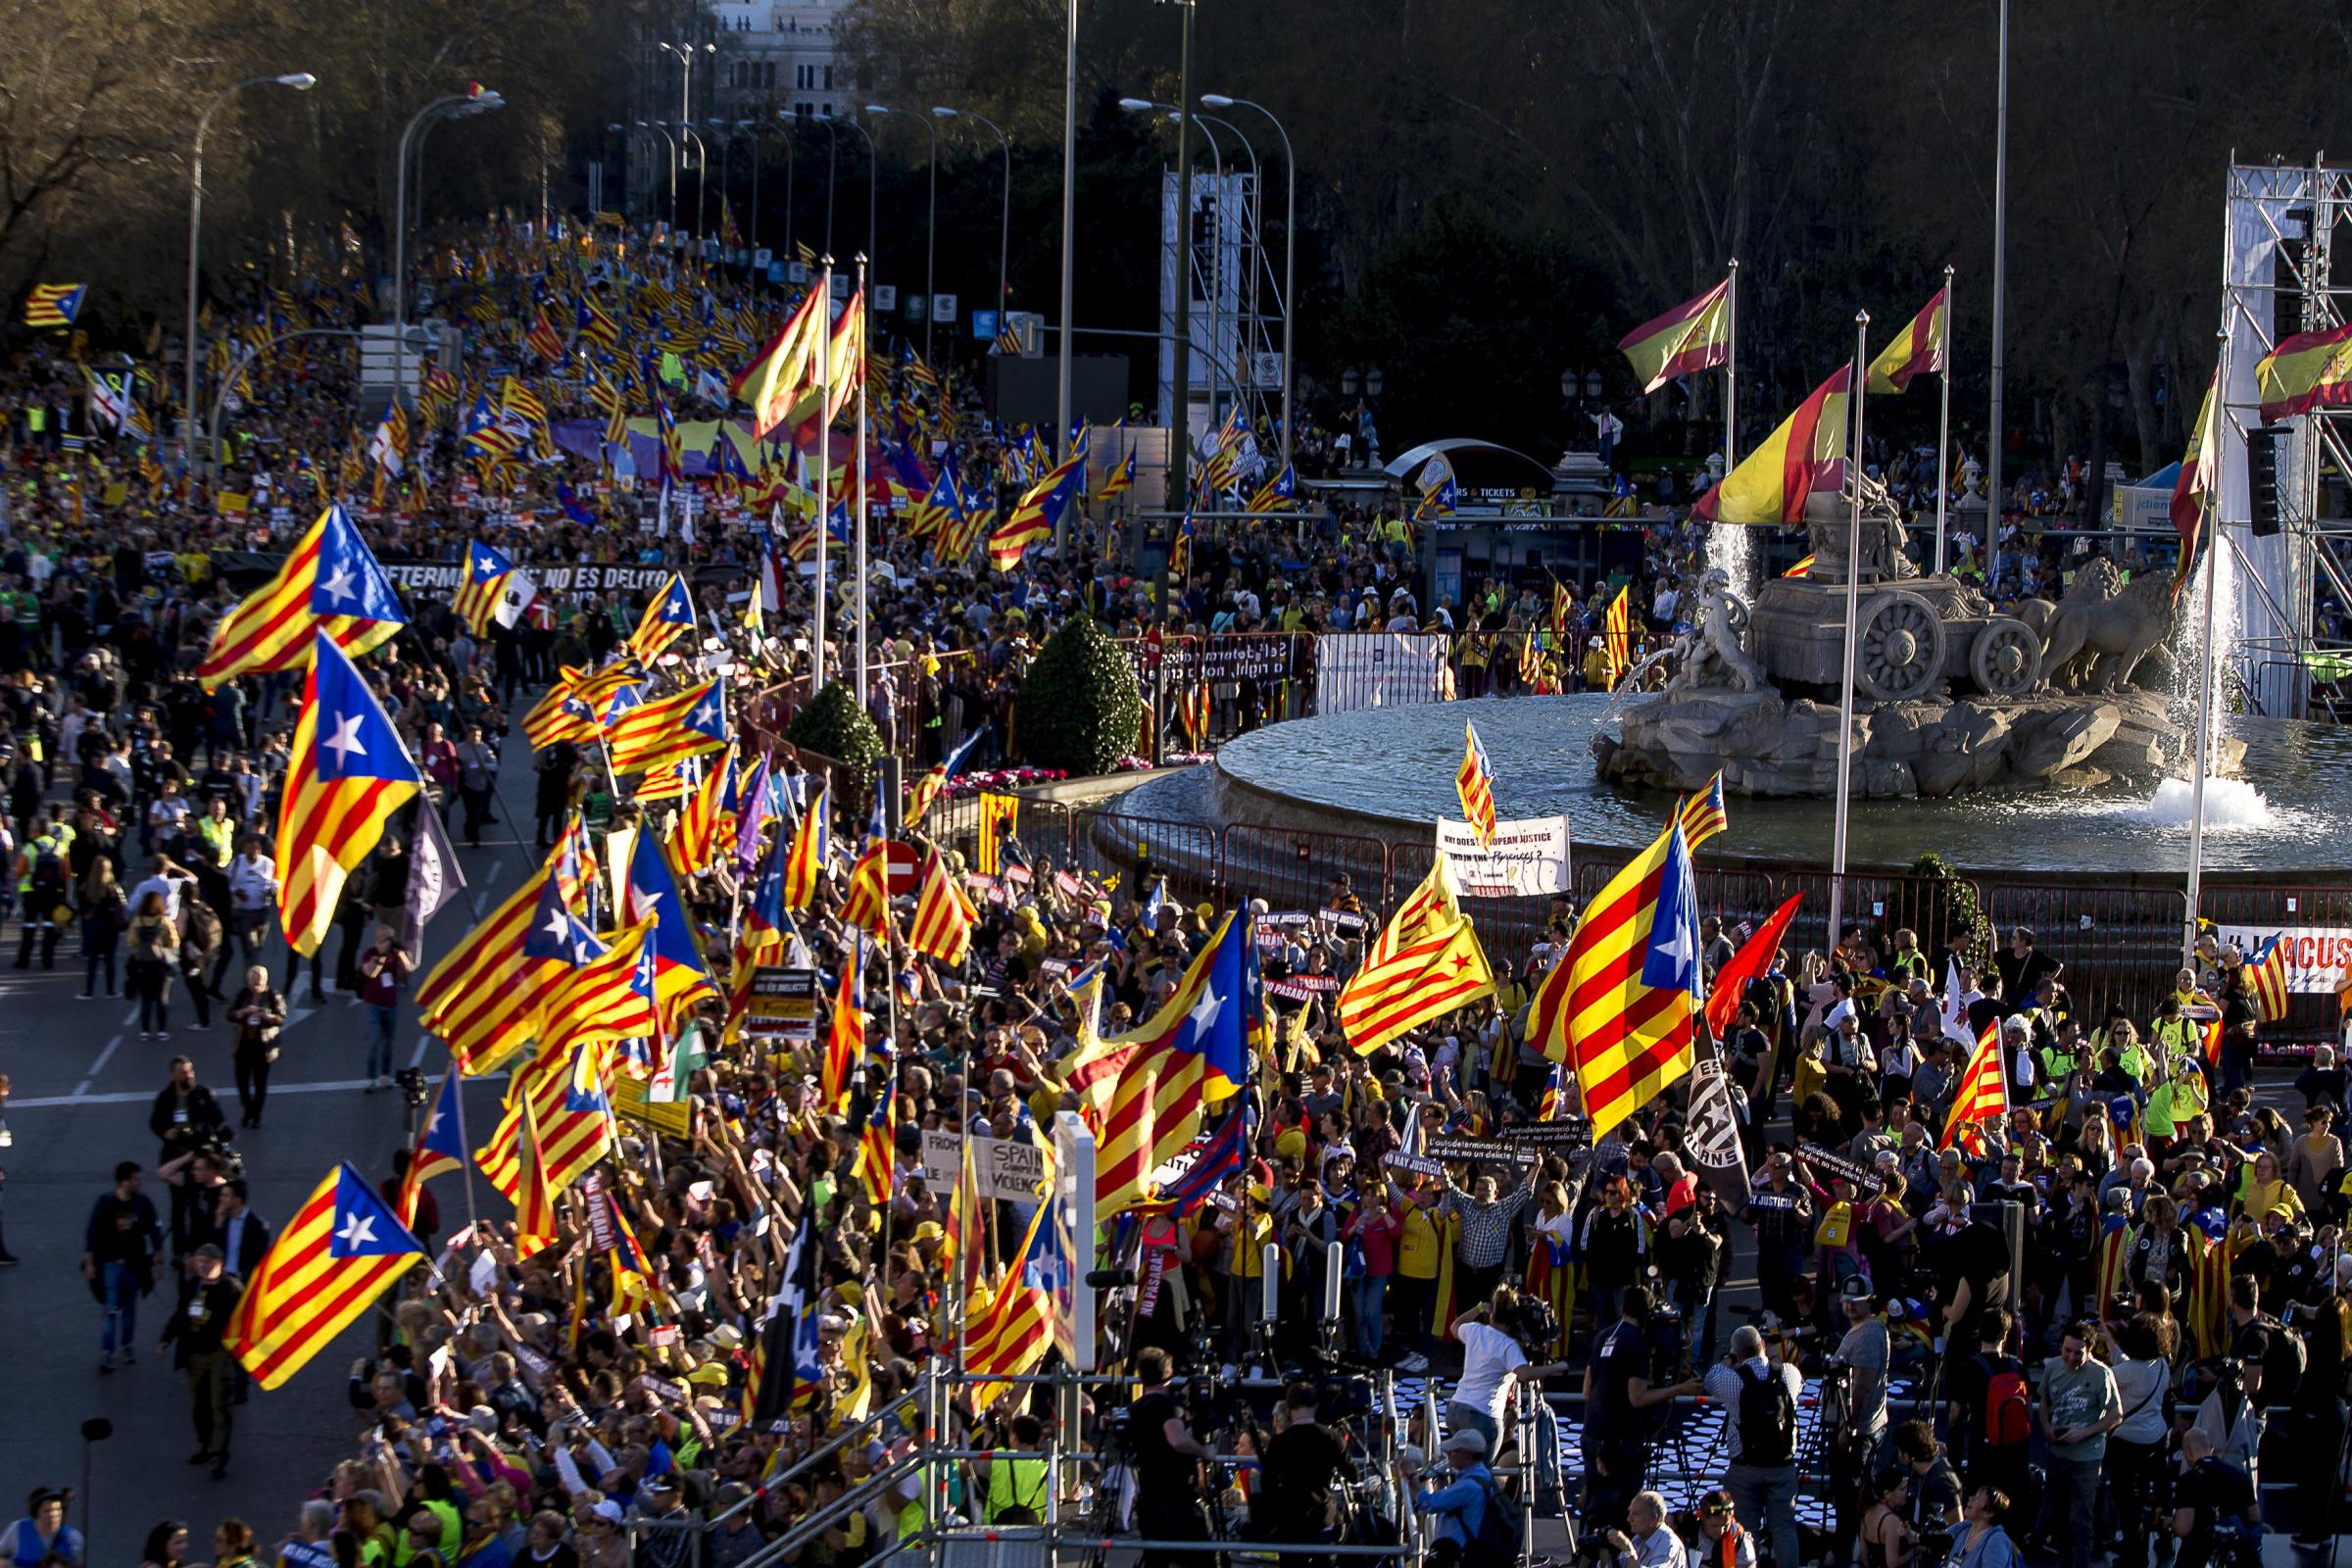 Independence marches in Catalonia attract enormous turnouts